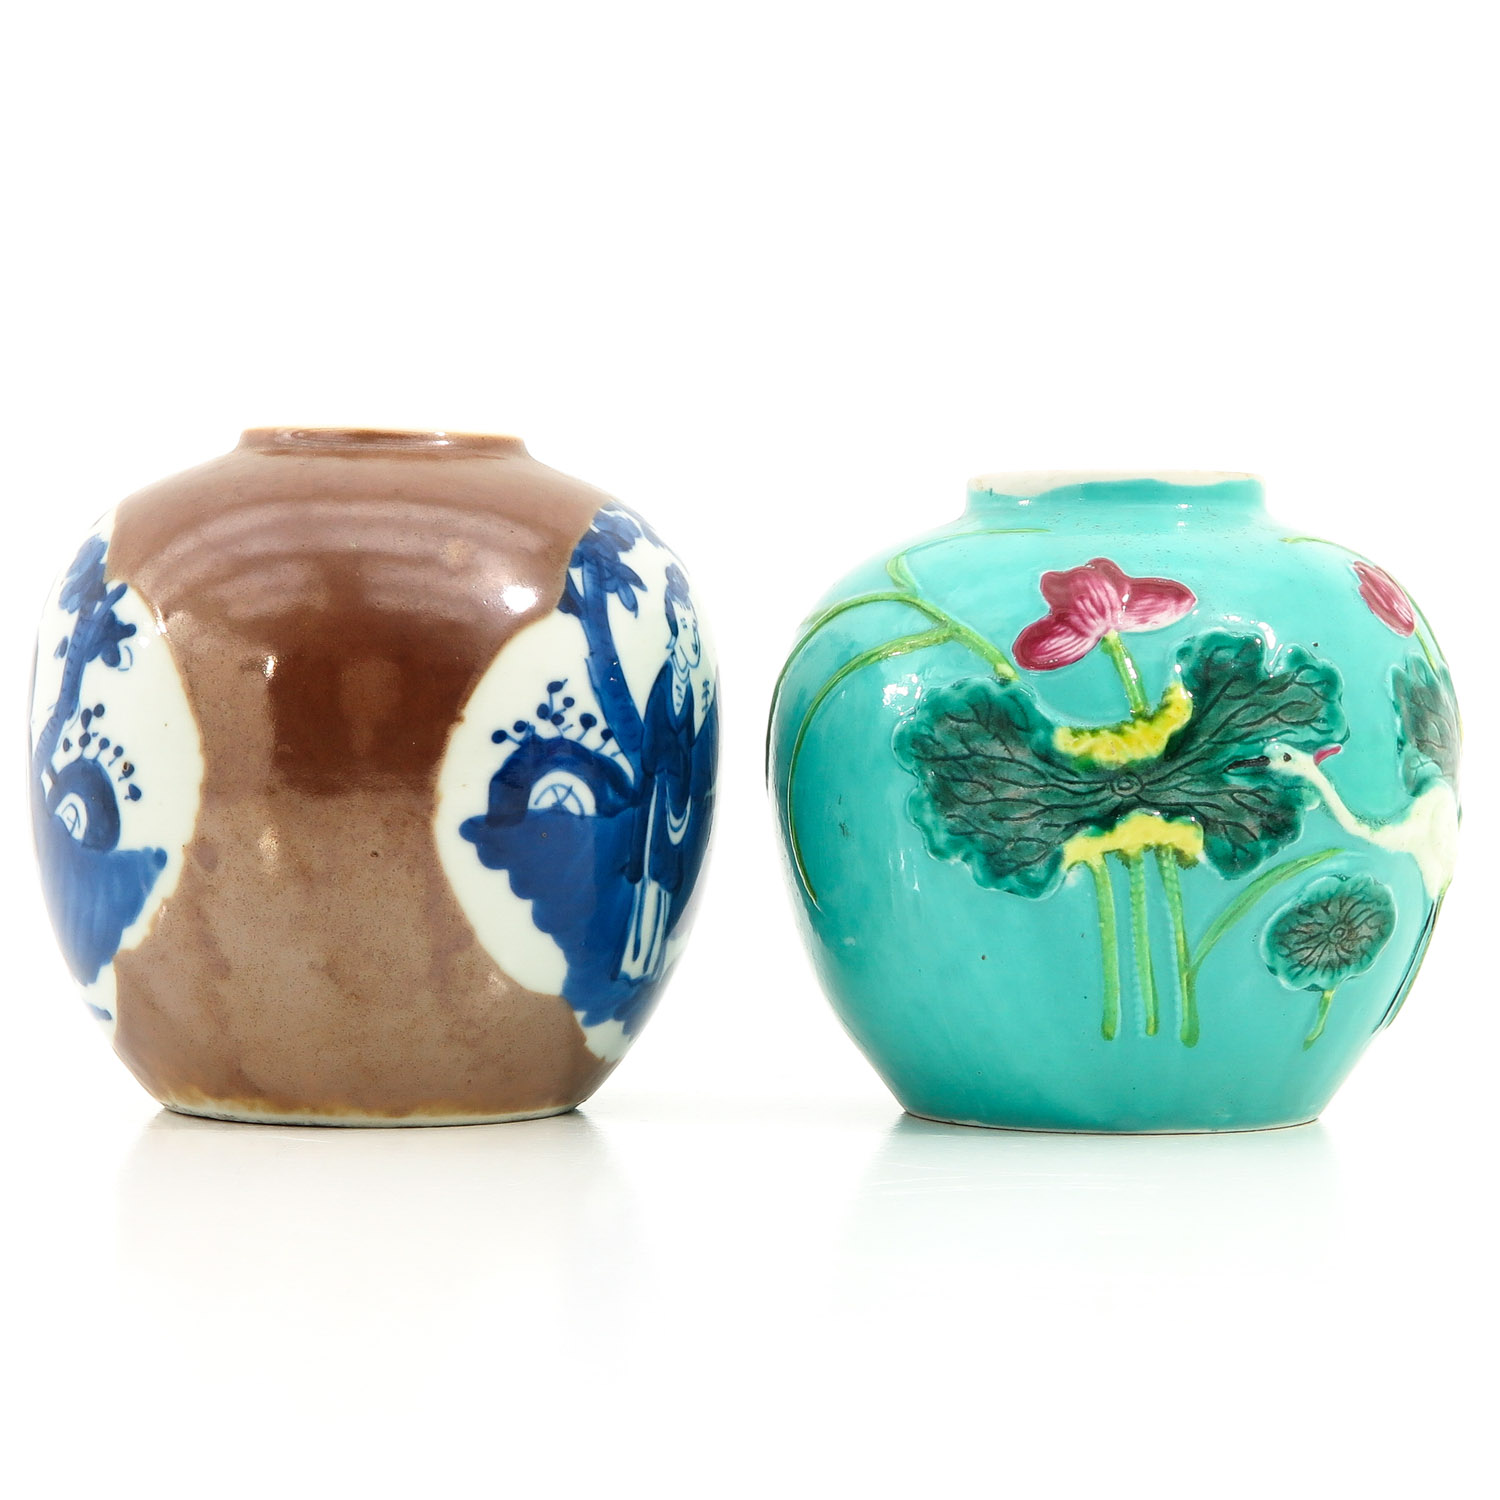 A Lot of 2 Ginger Jars - Image 4 of 10